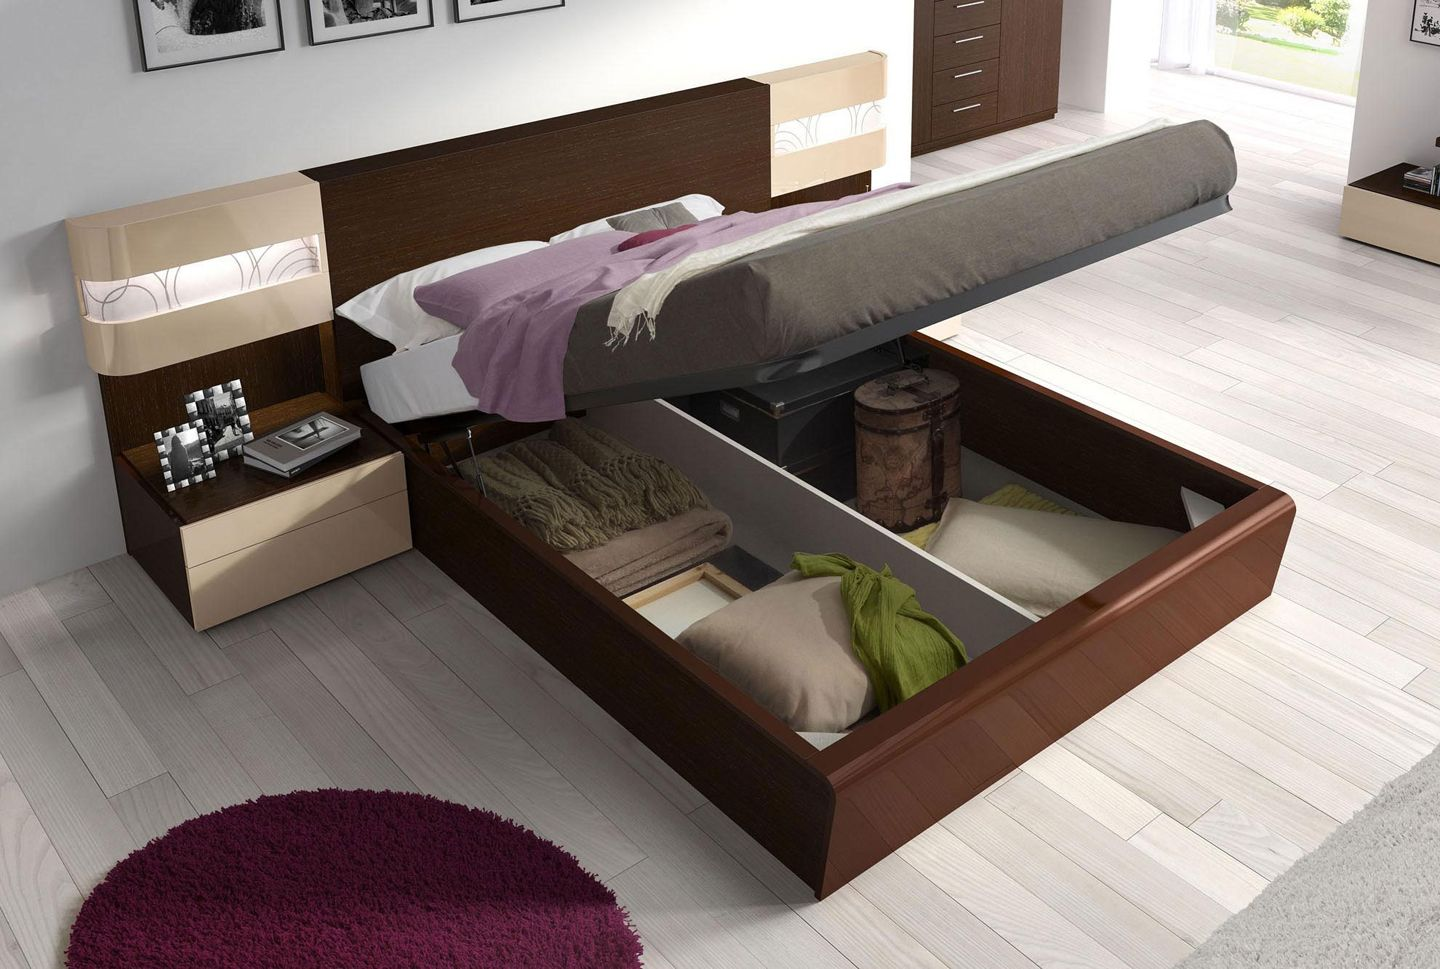 Unique Modern Bedroom Furniture Design | Amazing Bedroom Designs ...